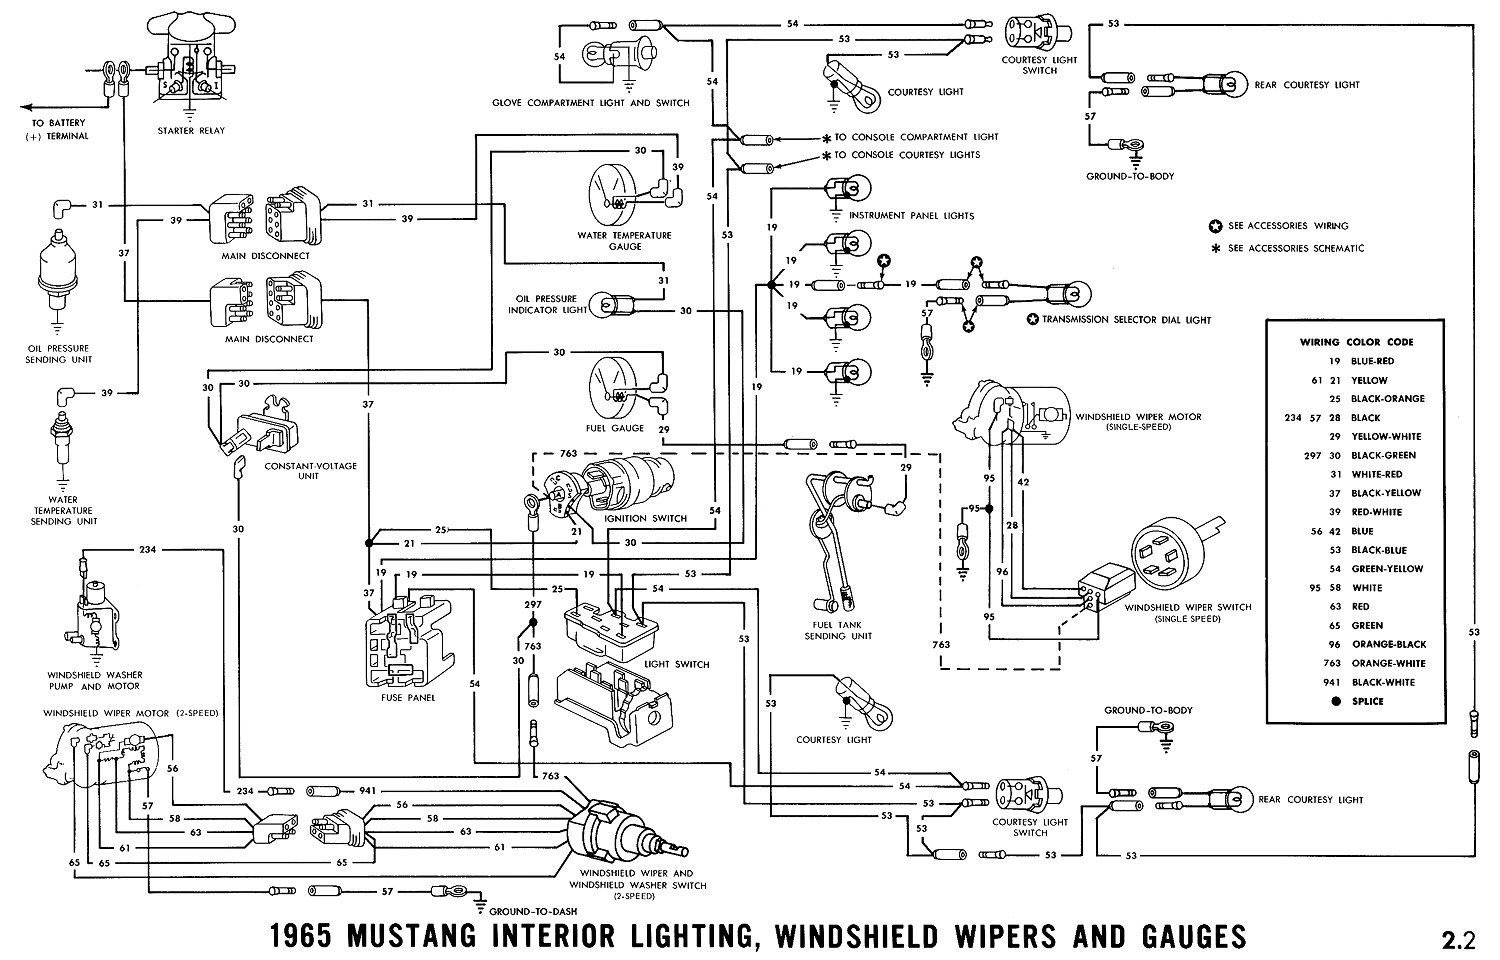 1965g 1968 mustang wiring diagram for light wiring diagram simonand 1965 mustang wiring harness diagram at fashall.co